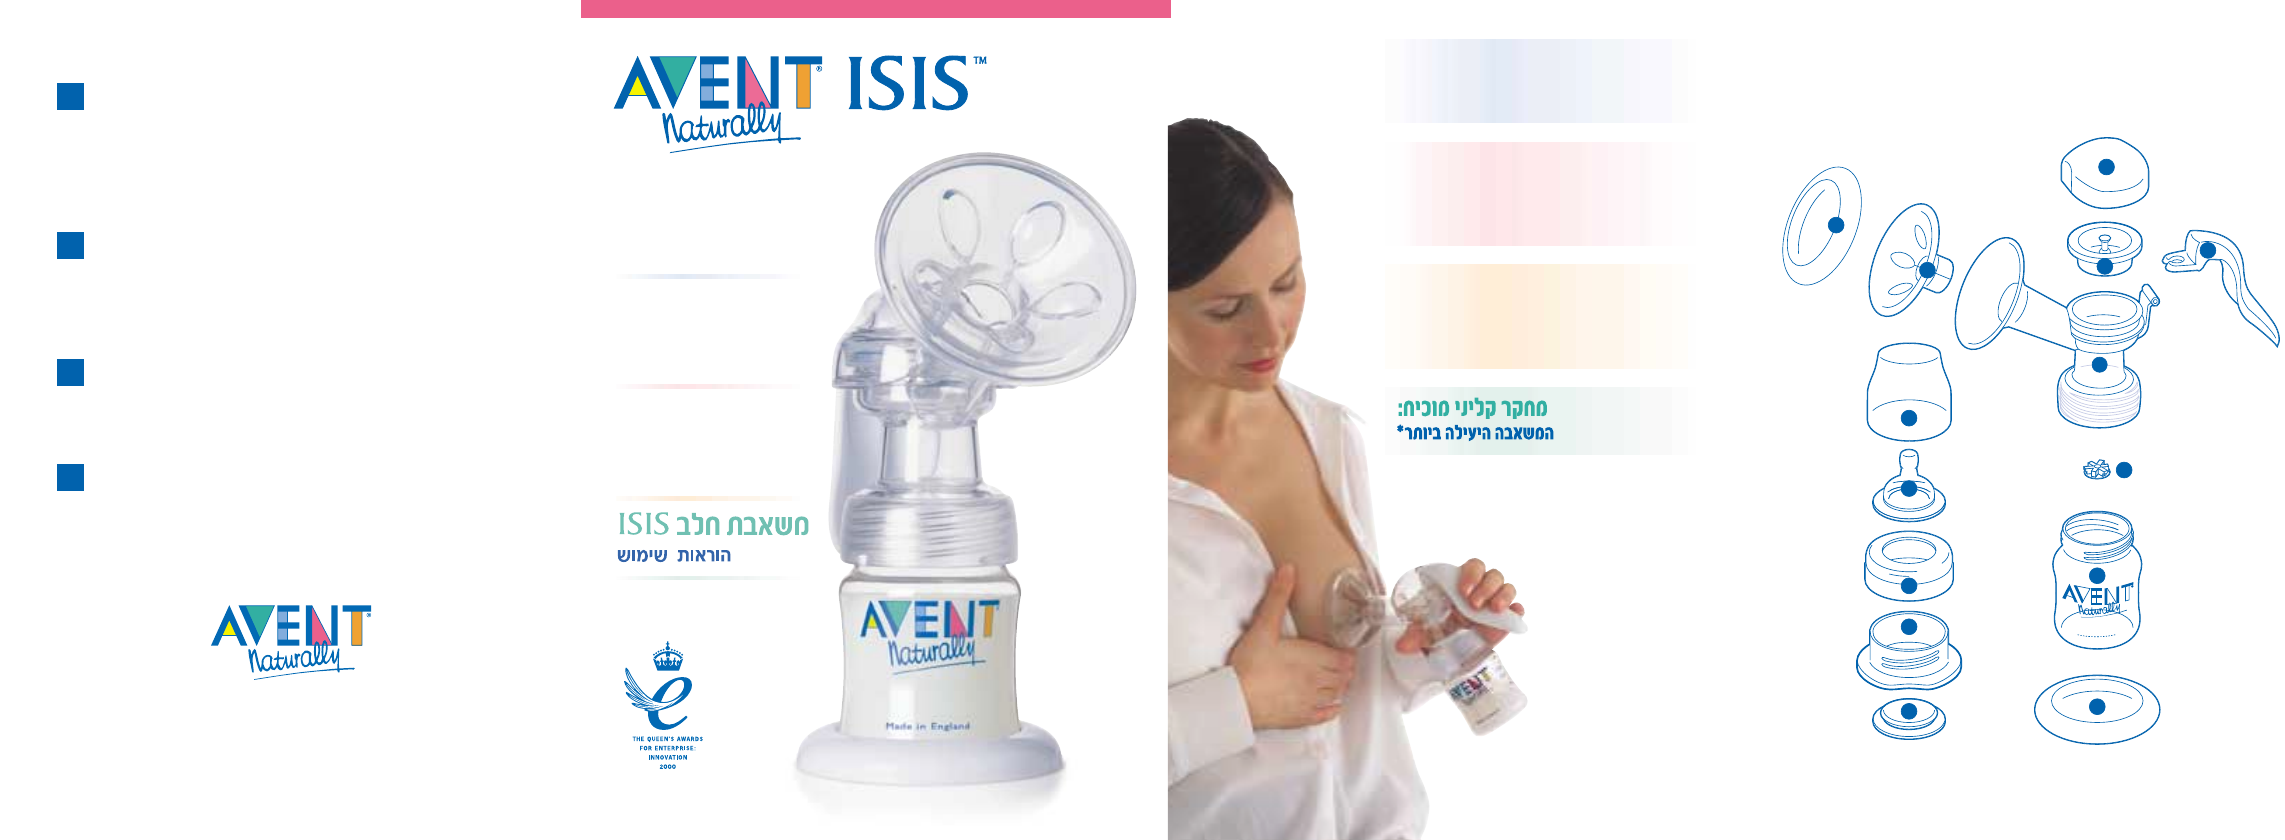 avent breast pump isis breast pump user guide manualsonline com rh kitchen manualsonline com philips avent manual breast pump assembly instructions philips avent manual breast pump user guide